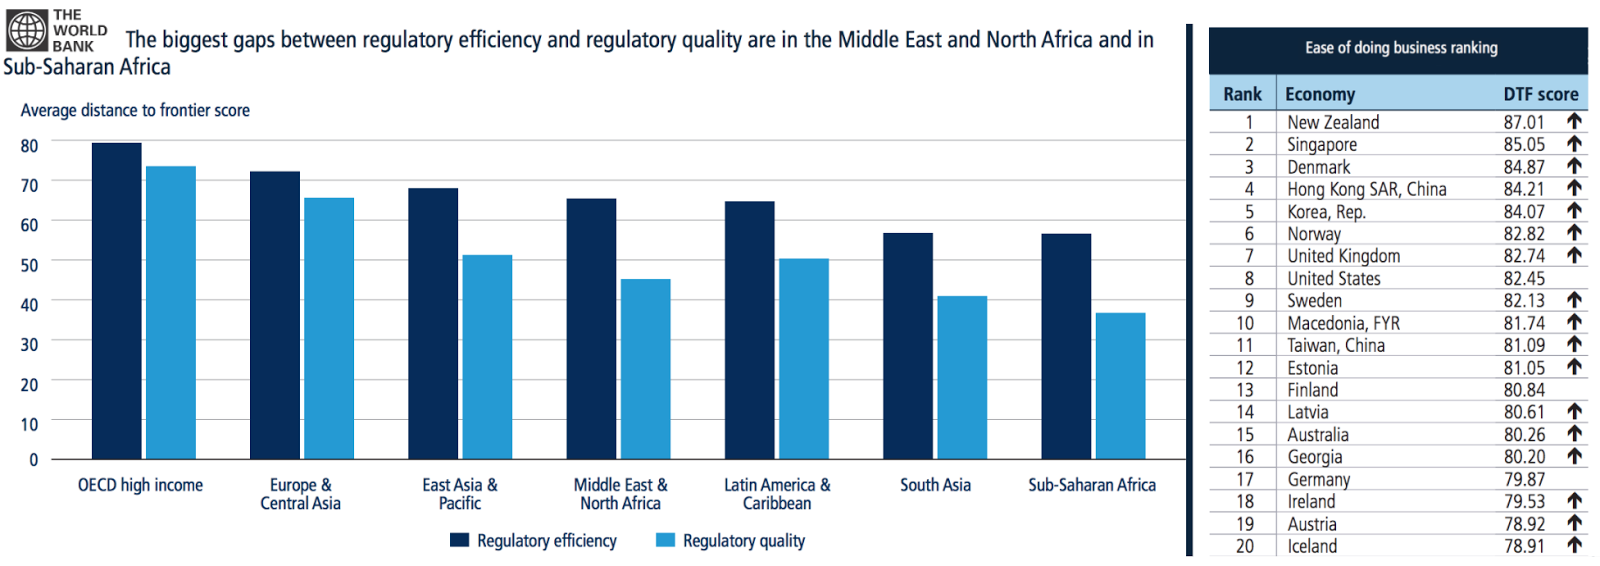 The importance of regulations for economic prosperity